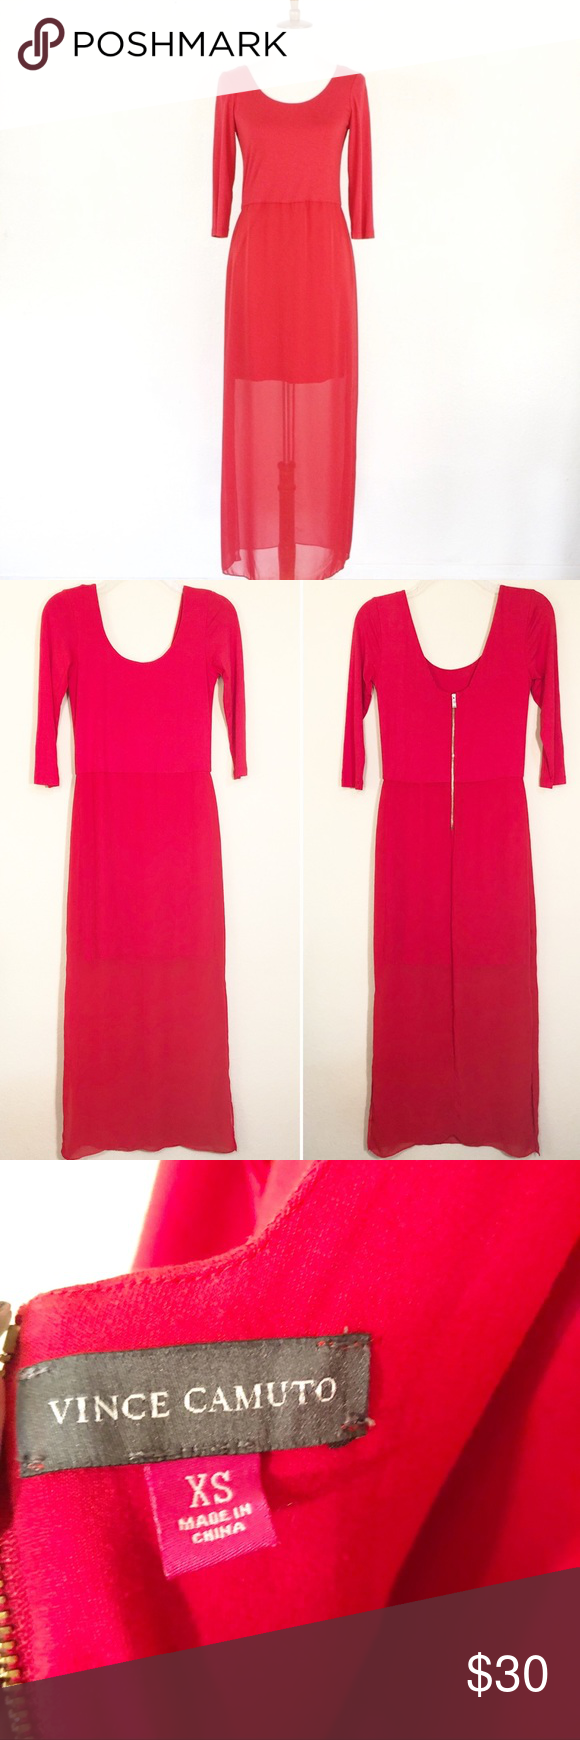 Vince Camuto Red Long Sleeve Maxi Dress Red Long Sleeve Maxi Dress Maxi Dress With Sleeves Long Sleeve Maxi Dress [ 1740 x 580 Pixel ]